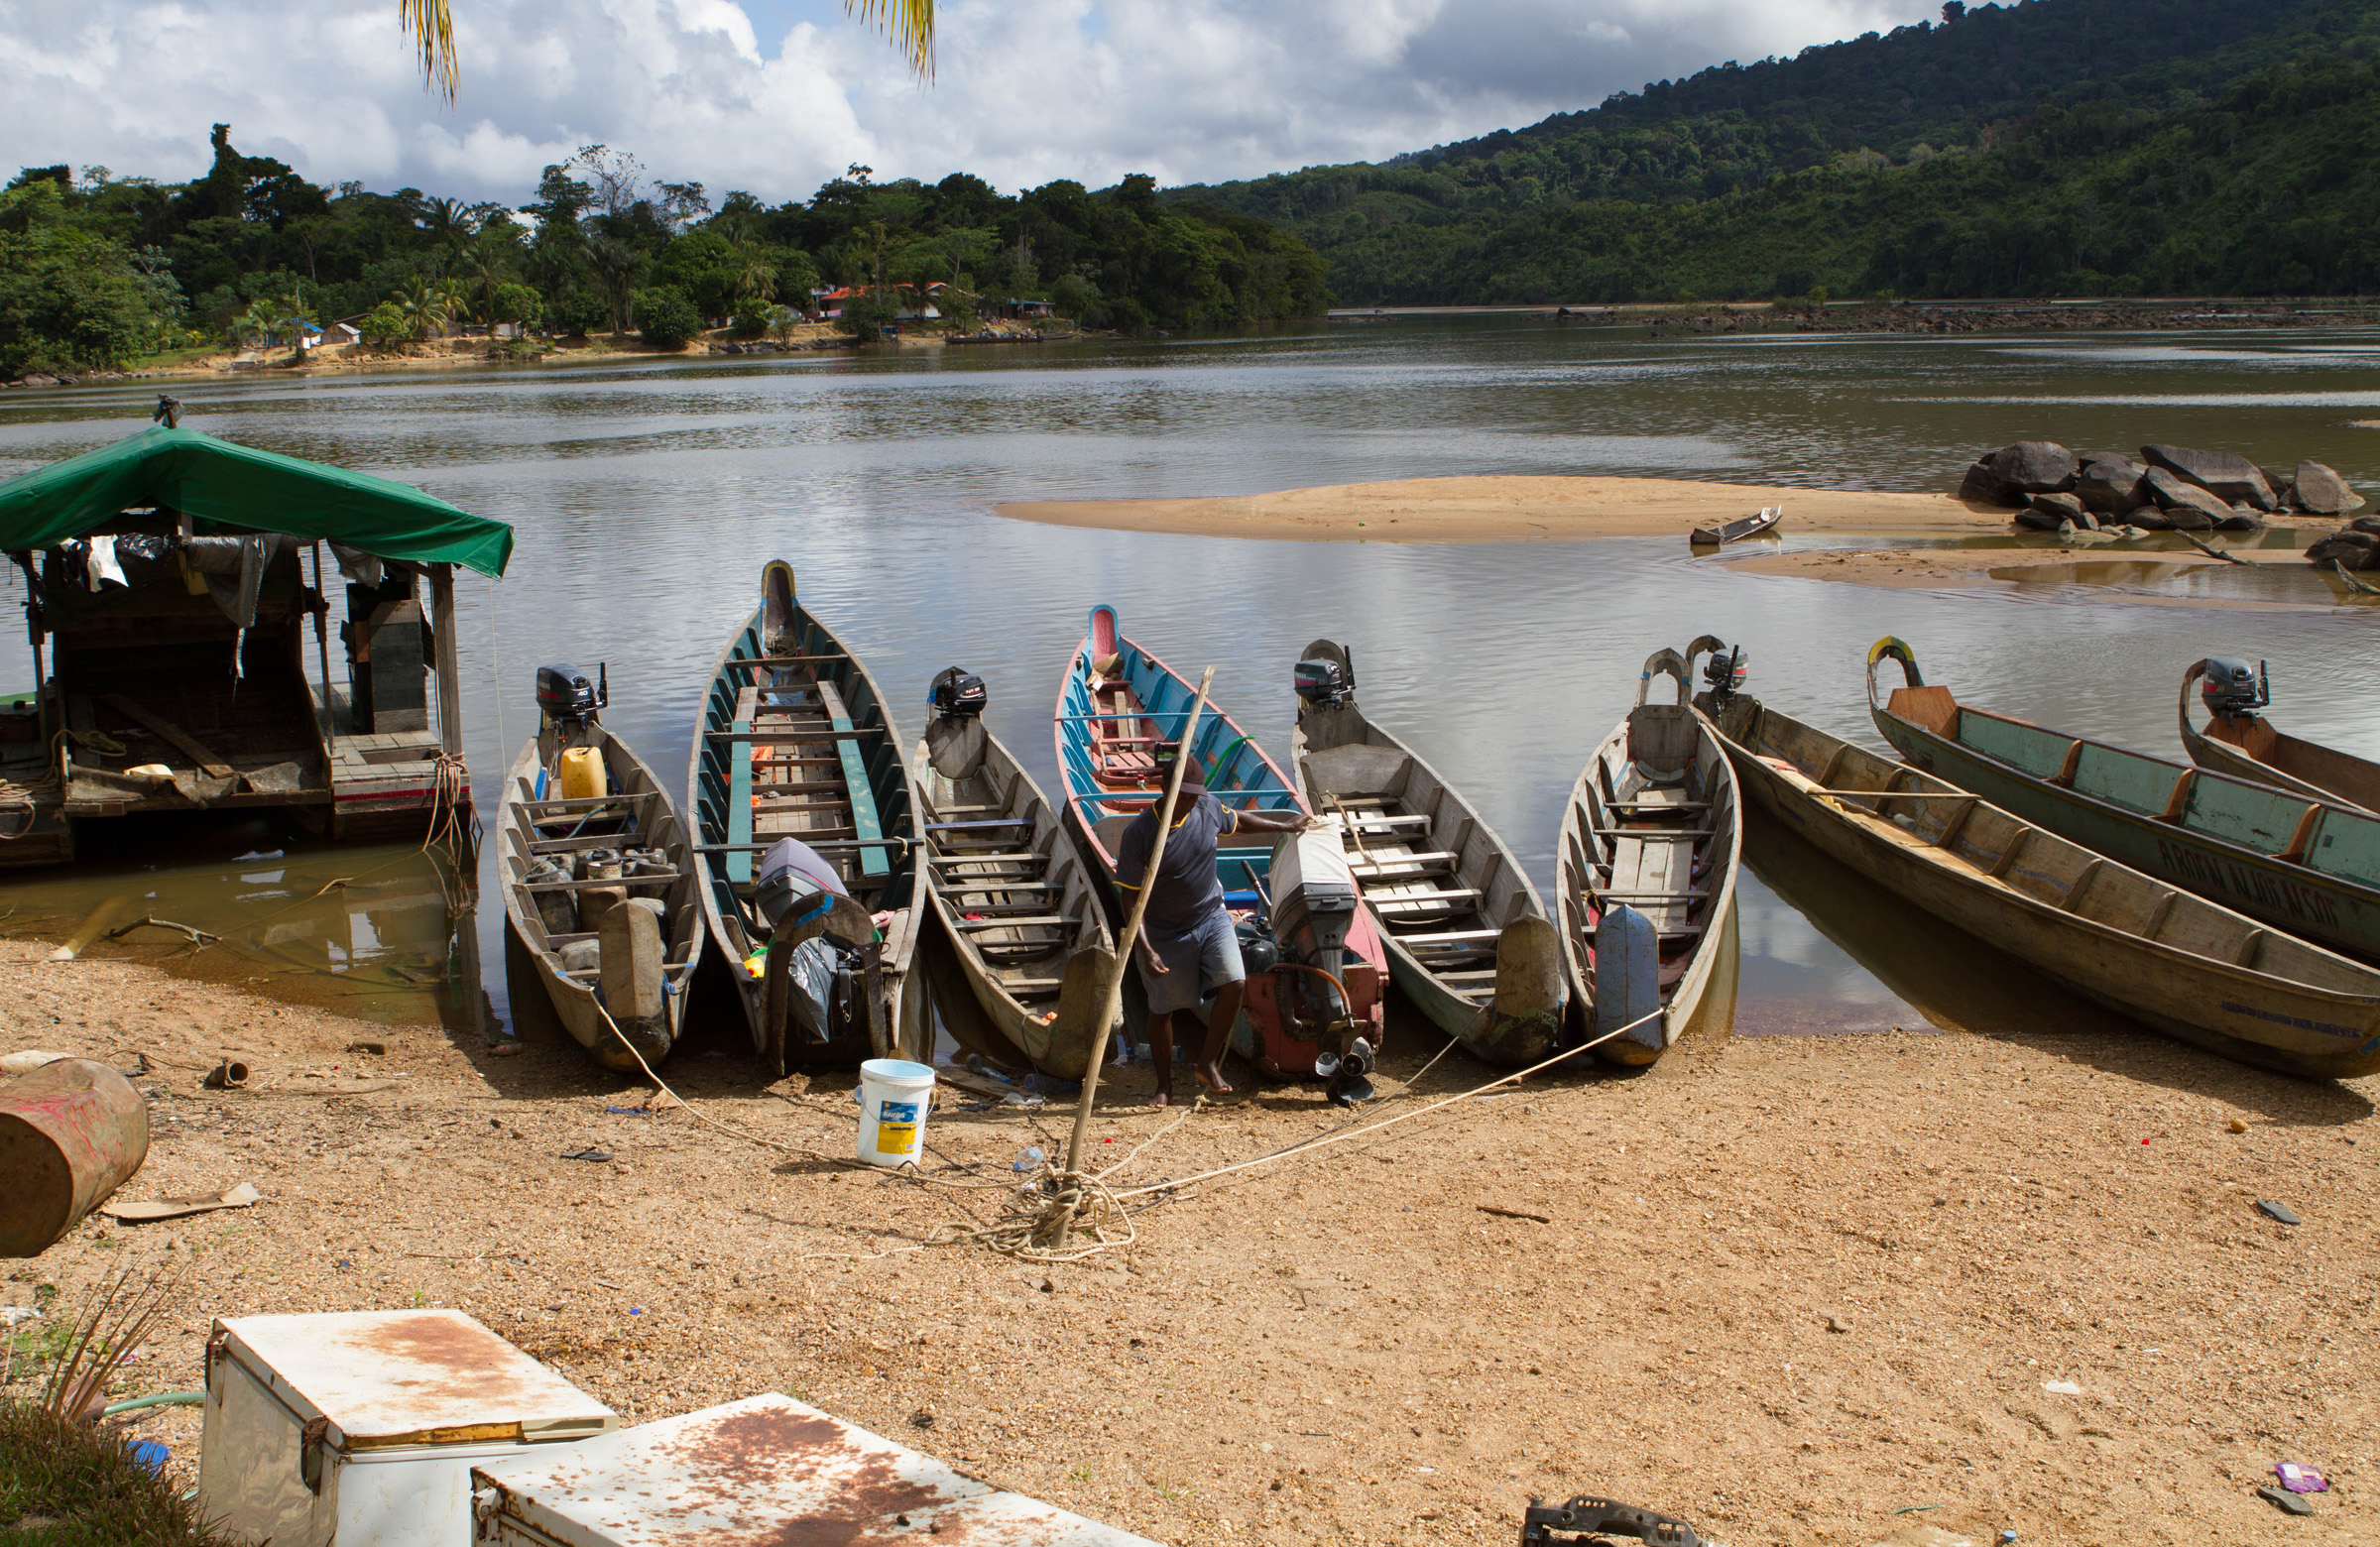 Boats by the river in Suriname - by W Mink